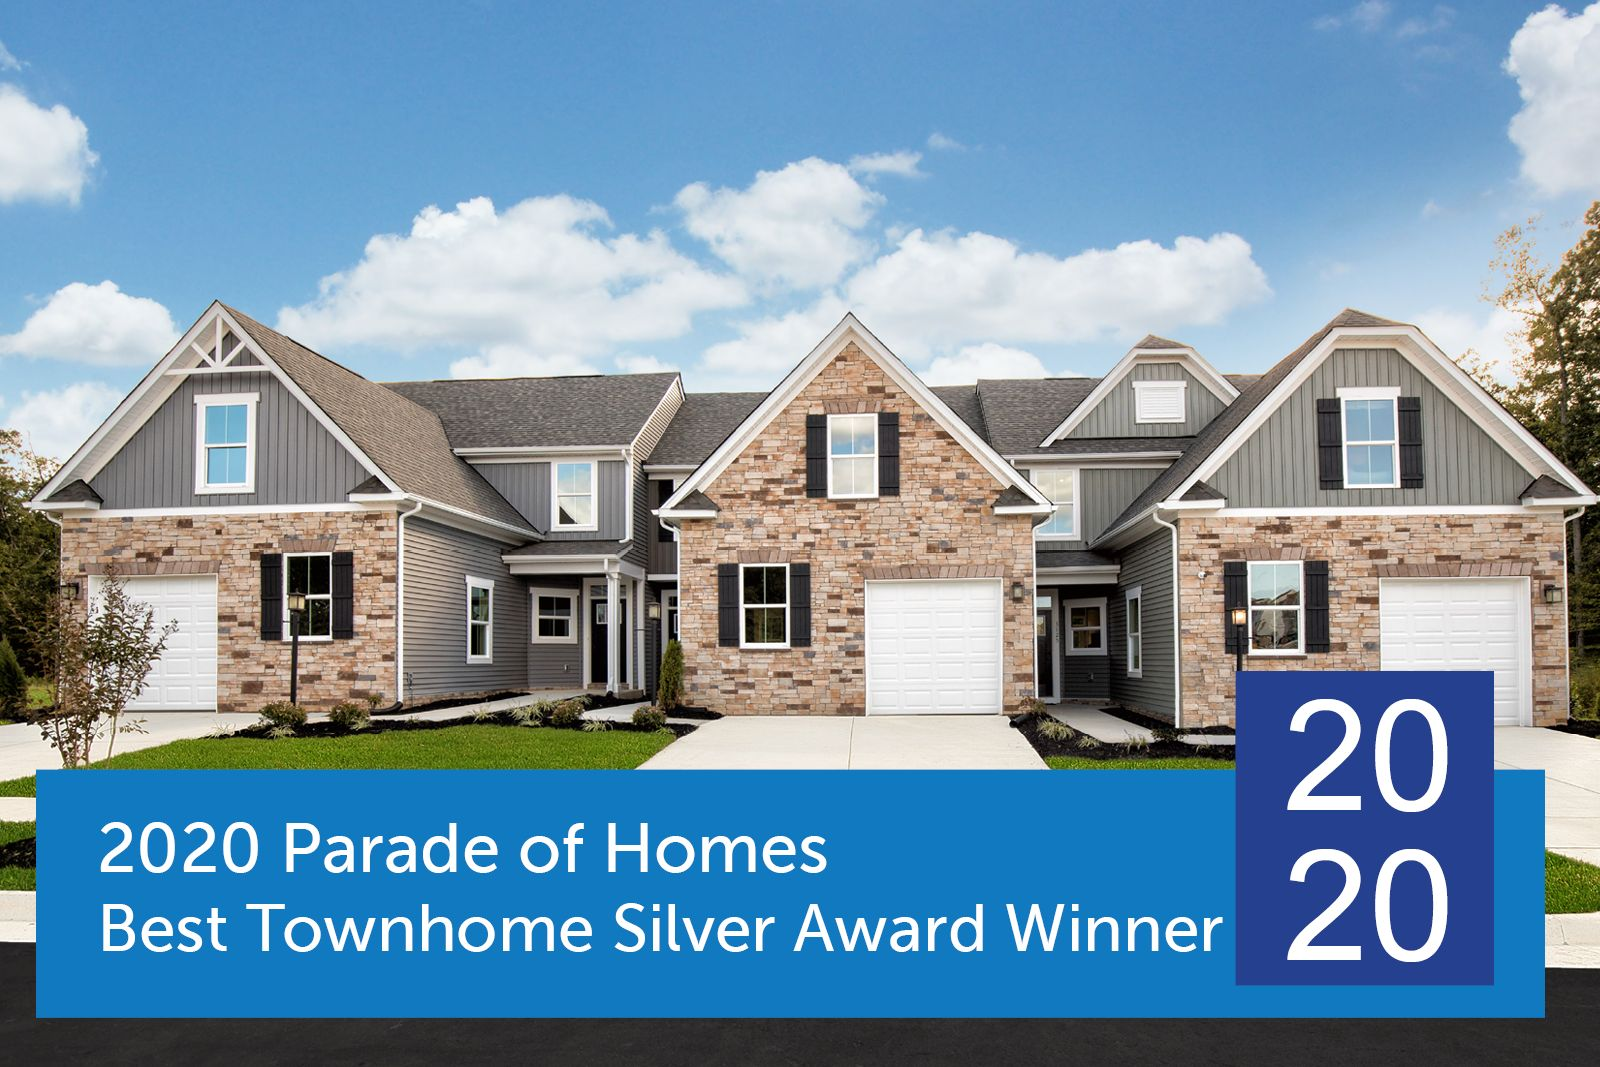 2020 Parade of Homes Best Townhome Silver Award Winner:Excited to be a 2020 Richmond Parade of Homes Winner! Winning Best Townhome Silver & Best Bathroom! The highly anticipated new section is now open by appointment.Schedule your visit!